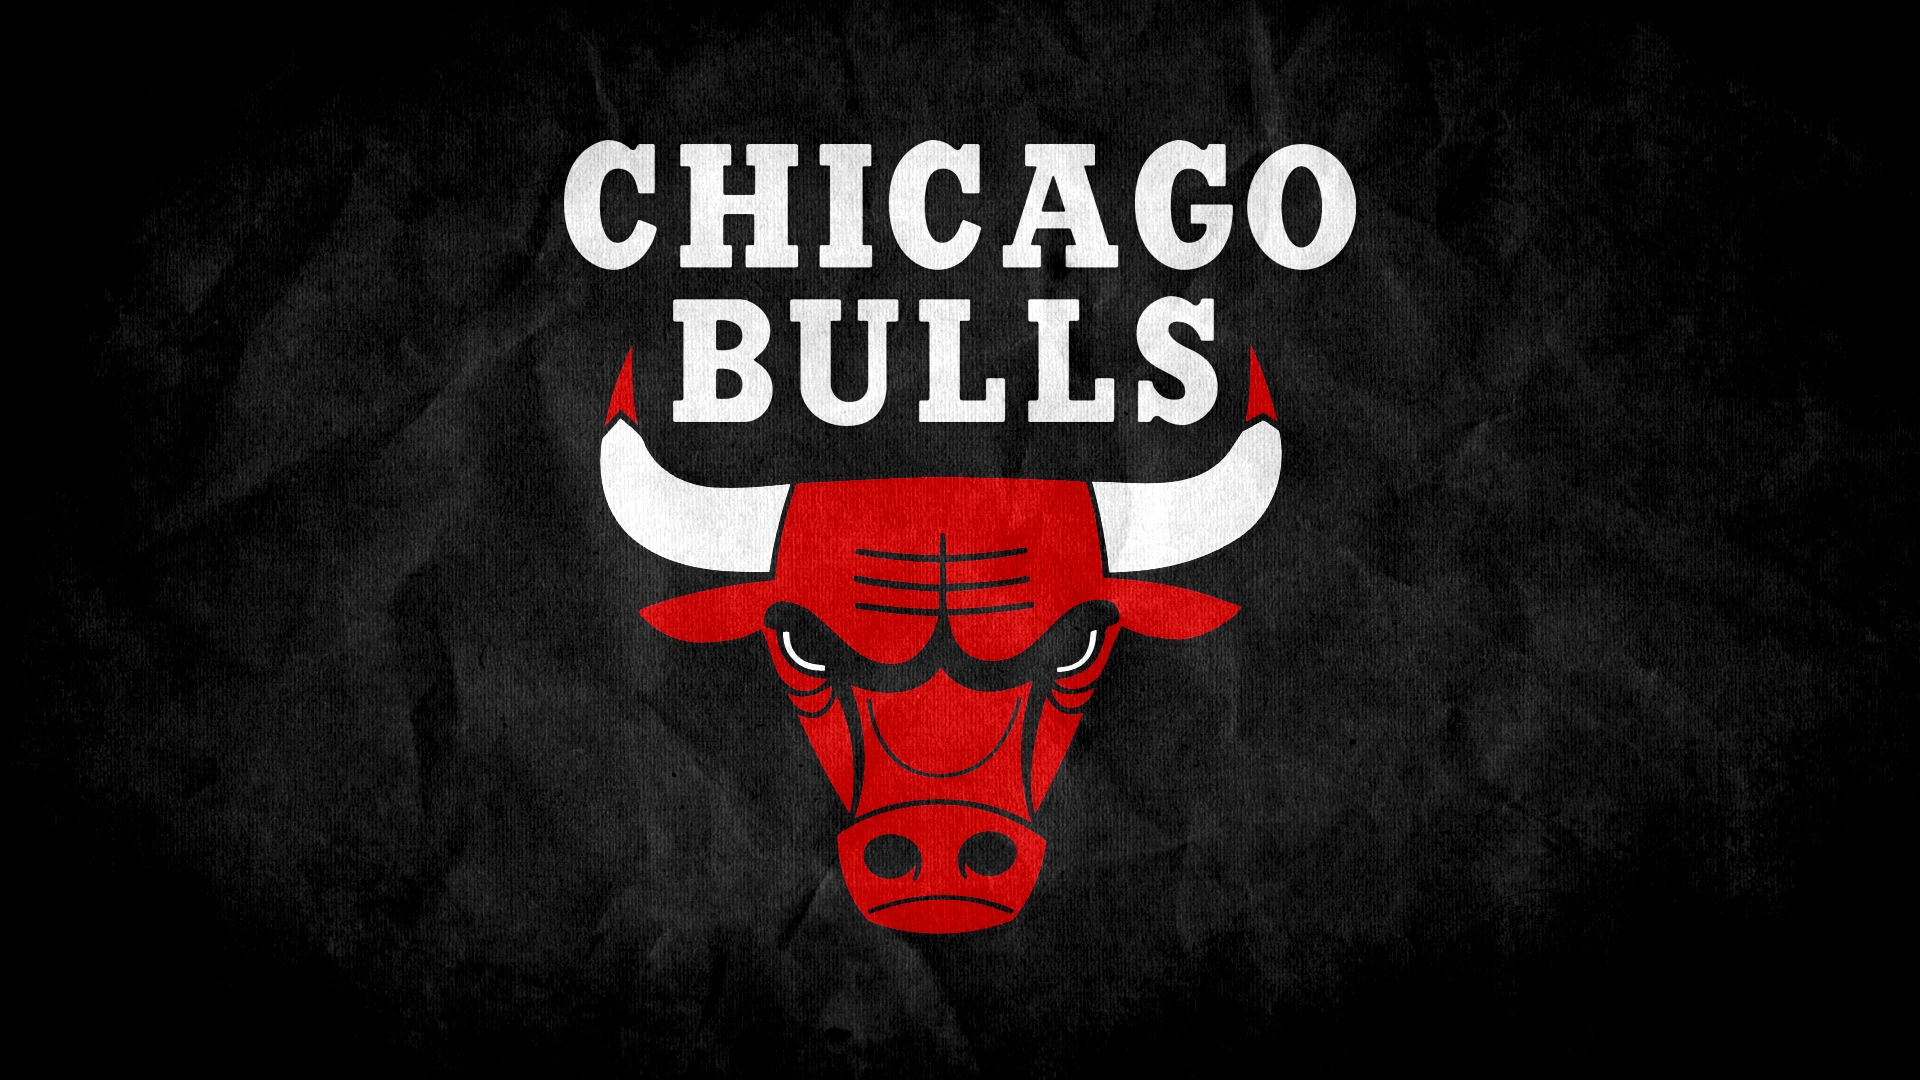 Chicago Bulls Logo Wallpapers HD | PixelsTalk Net